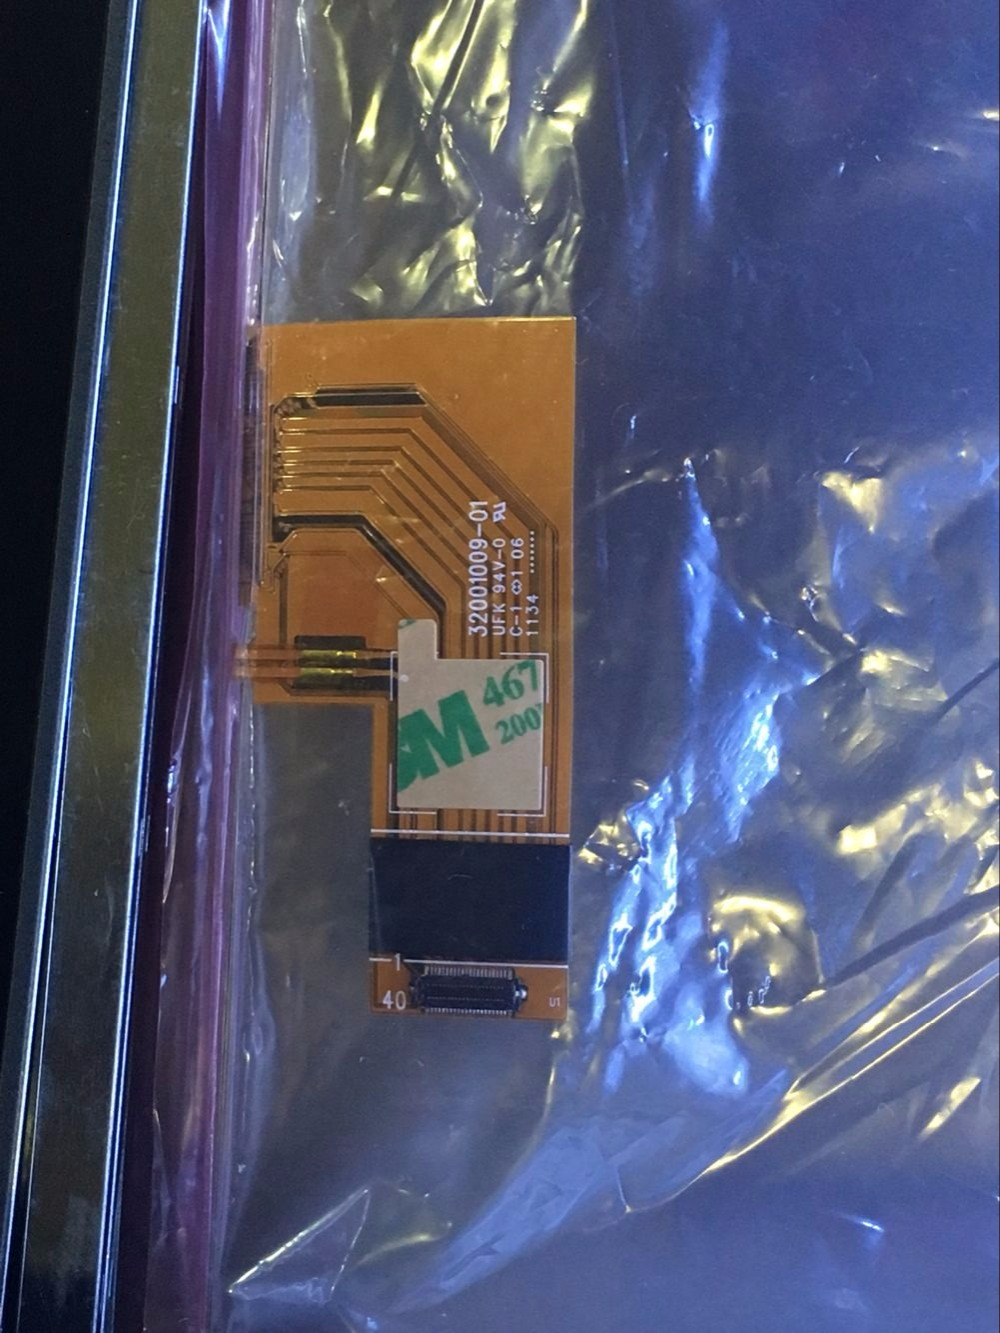 New 8 -inch LCD screen EJ080NA-04A 32001009-01 free shipping нестеров и 15 h0983a02 04a